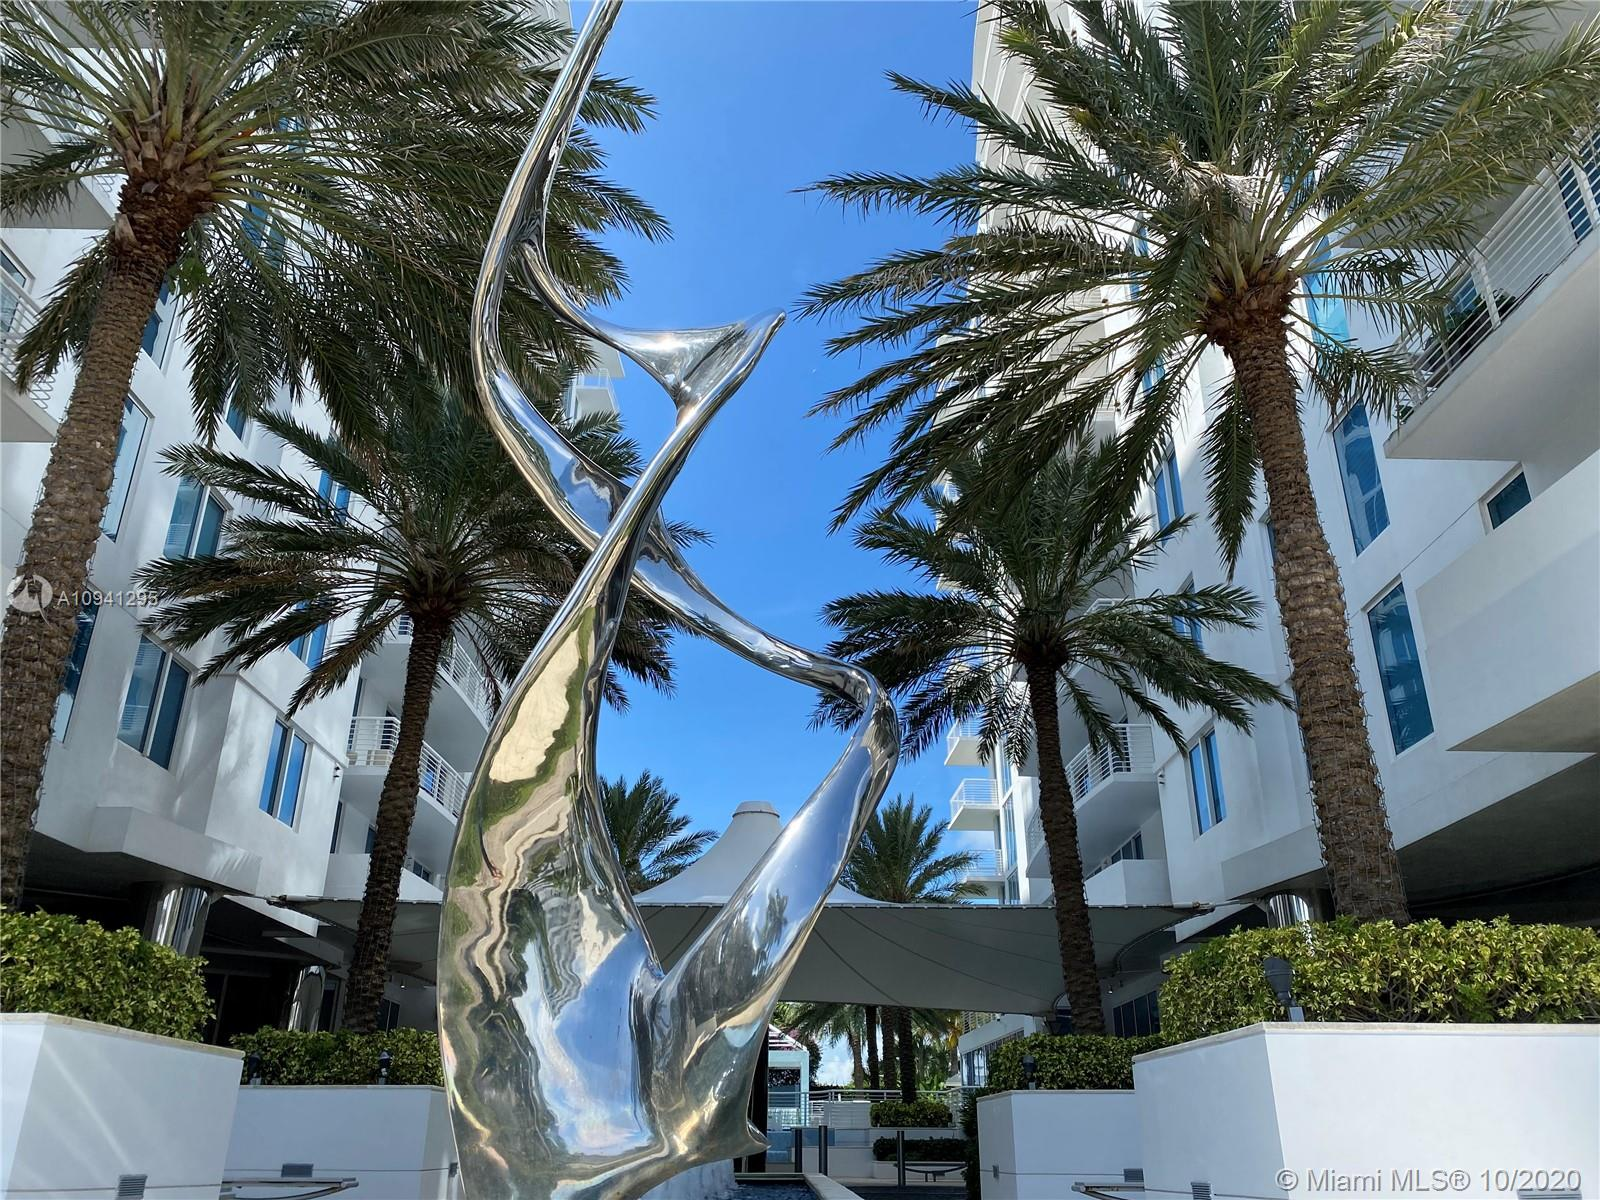 Price Reduced !!!! Sellers says Sell. Come and see this beautiful and modern condo in one of the newest building of the area, Sapphire. located across the beach you will find this amazing property with outstanding amenities as tropical pool with private cabanas, Gym, social room, sauna, turco and more... Unit has been used as a vacation home and is ready to move in it, two bedrooms plus a Den with two bathrooms nicely appointed with neutral colors. Marble floors on living areas and carpet on the bedrooms. Ample balcony to enjoy the ocean breeze. Impact windows, electric blackouts,california closets, work station built in at the Den, modern and beautiful kitchen with stainless steel  appliances  and much more to offer. Private beach club membership included.